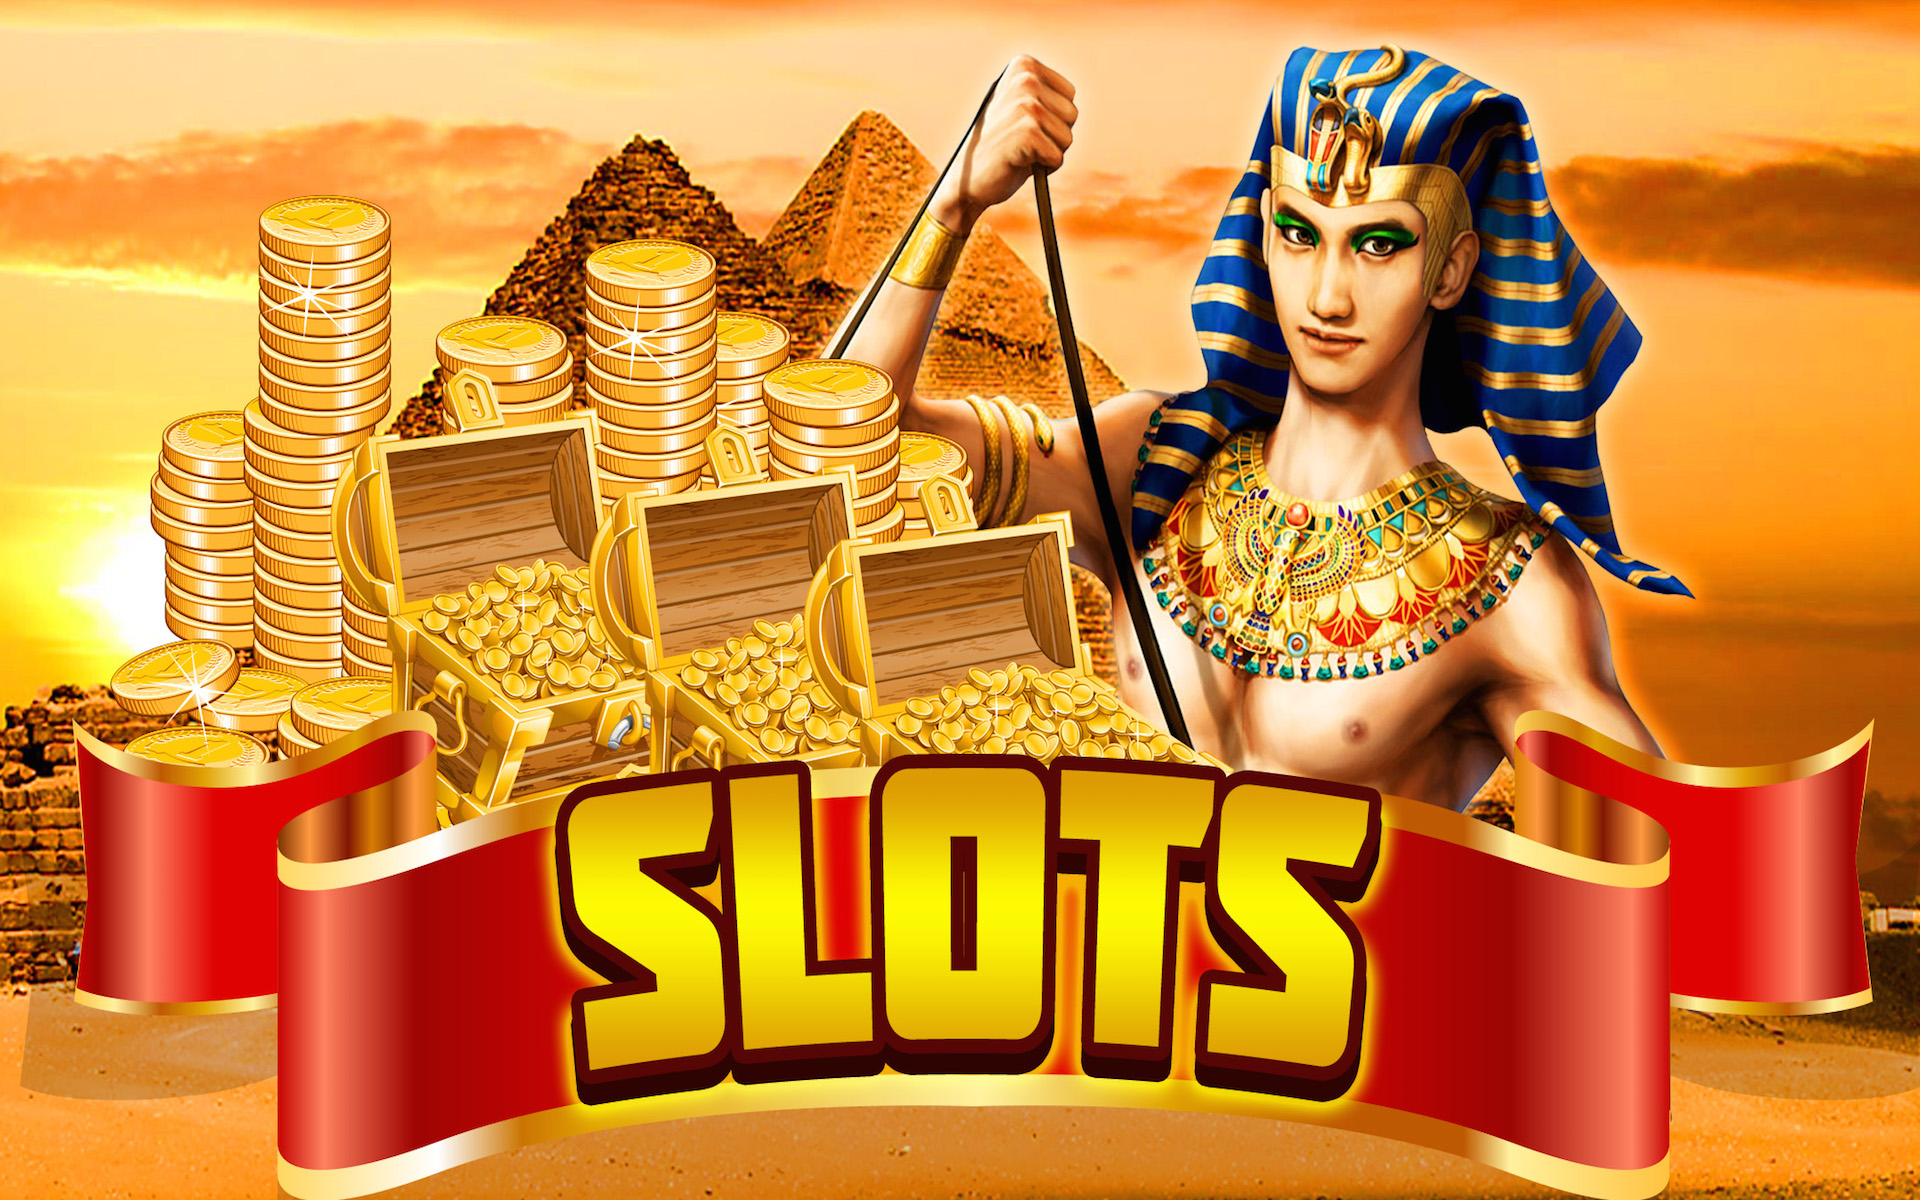 Lucky Lady Games Blog Archive 6 Best Strategies to Win Penny Slots